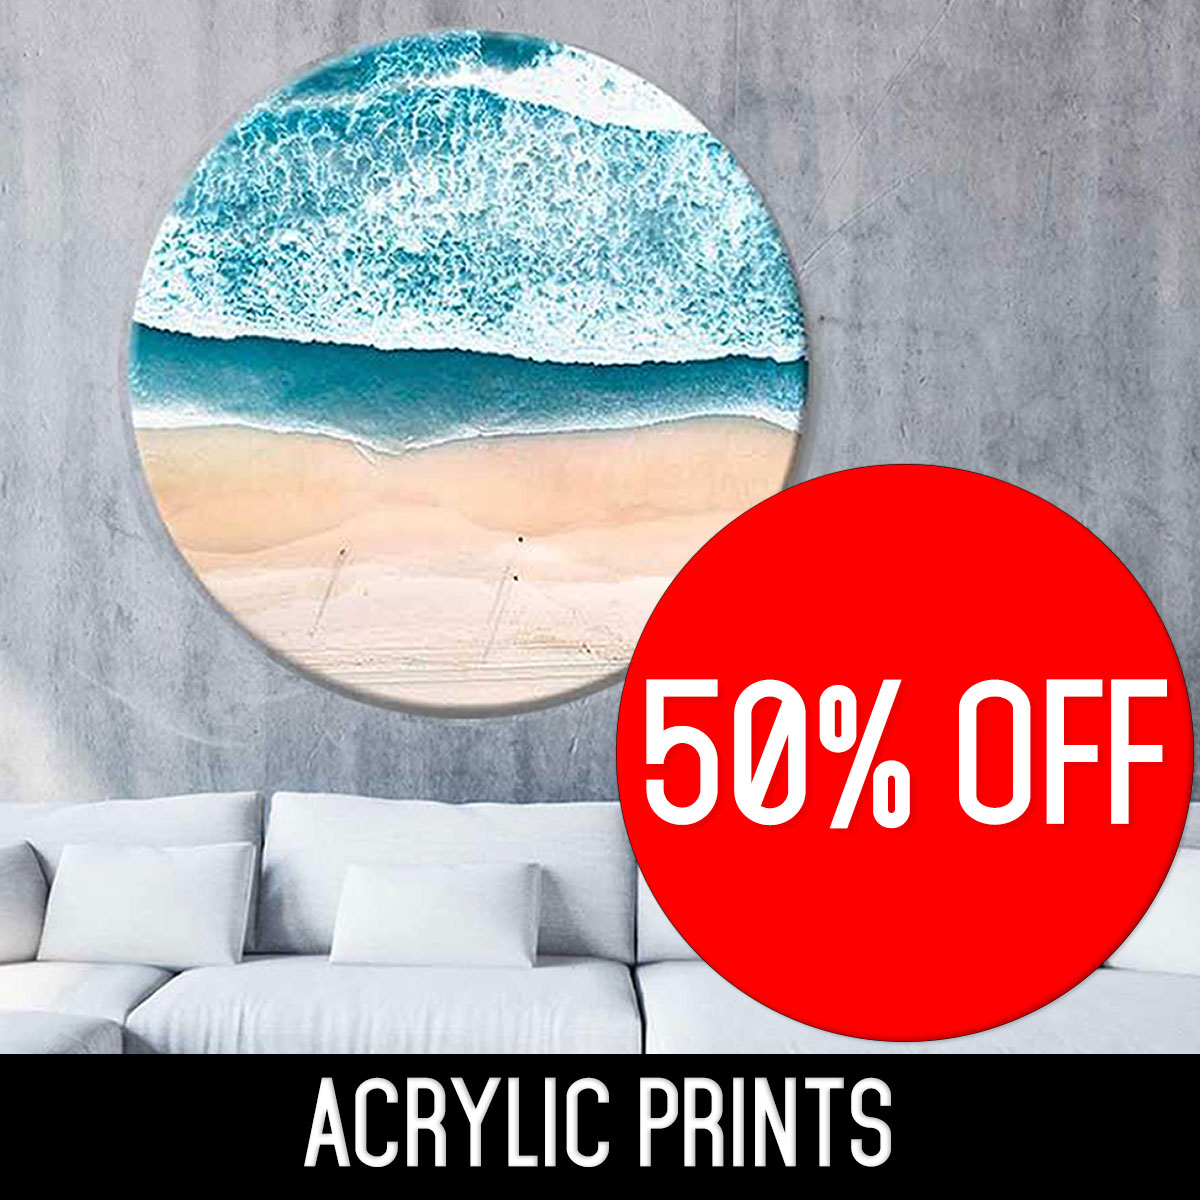 View All Acrylic Prints